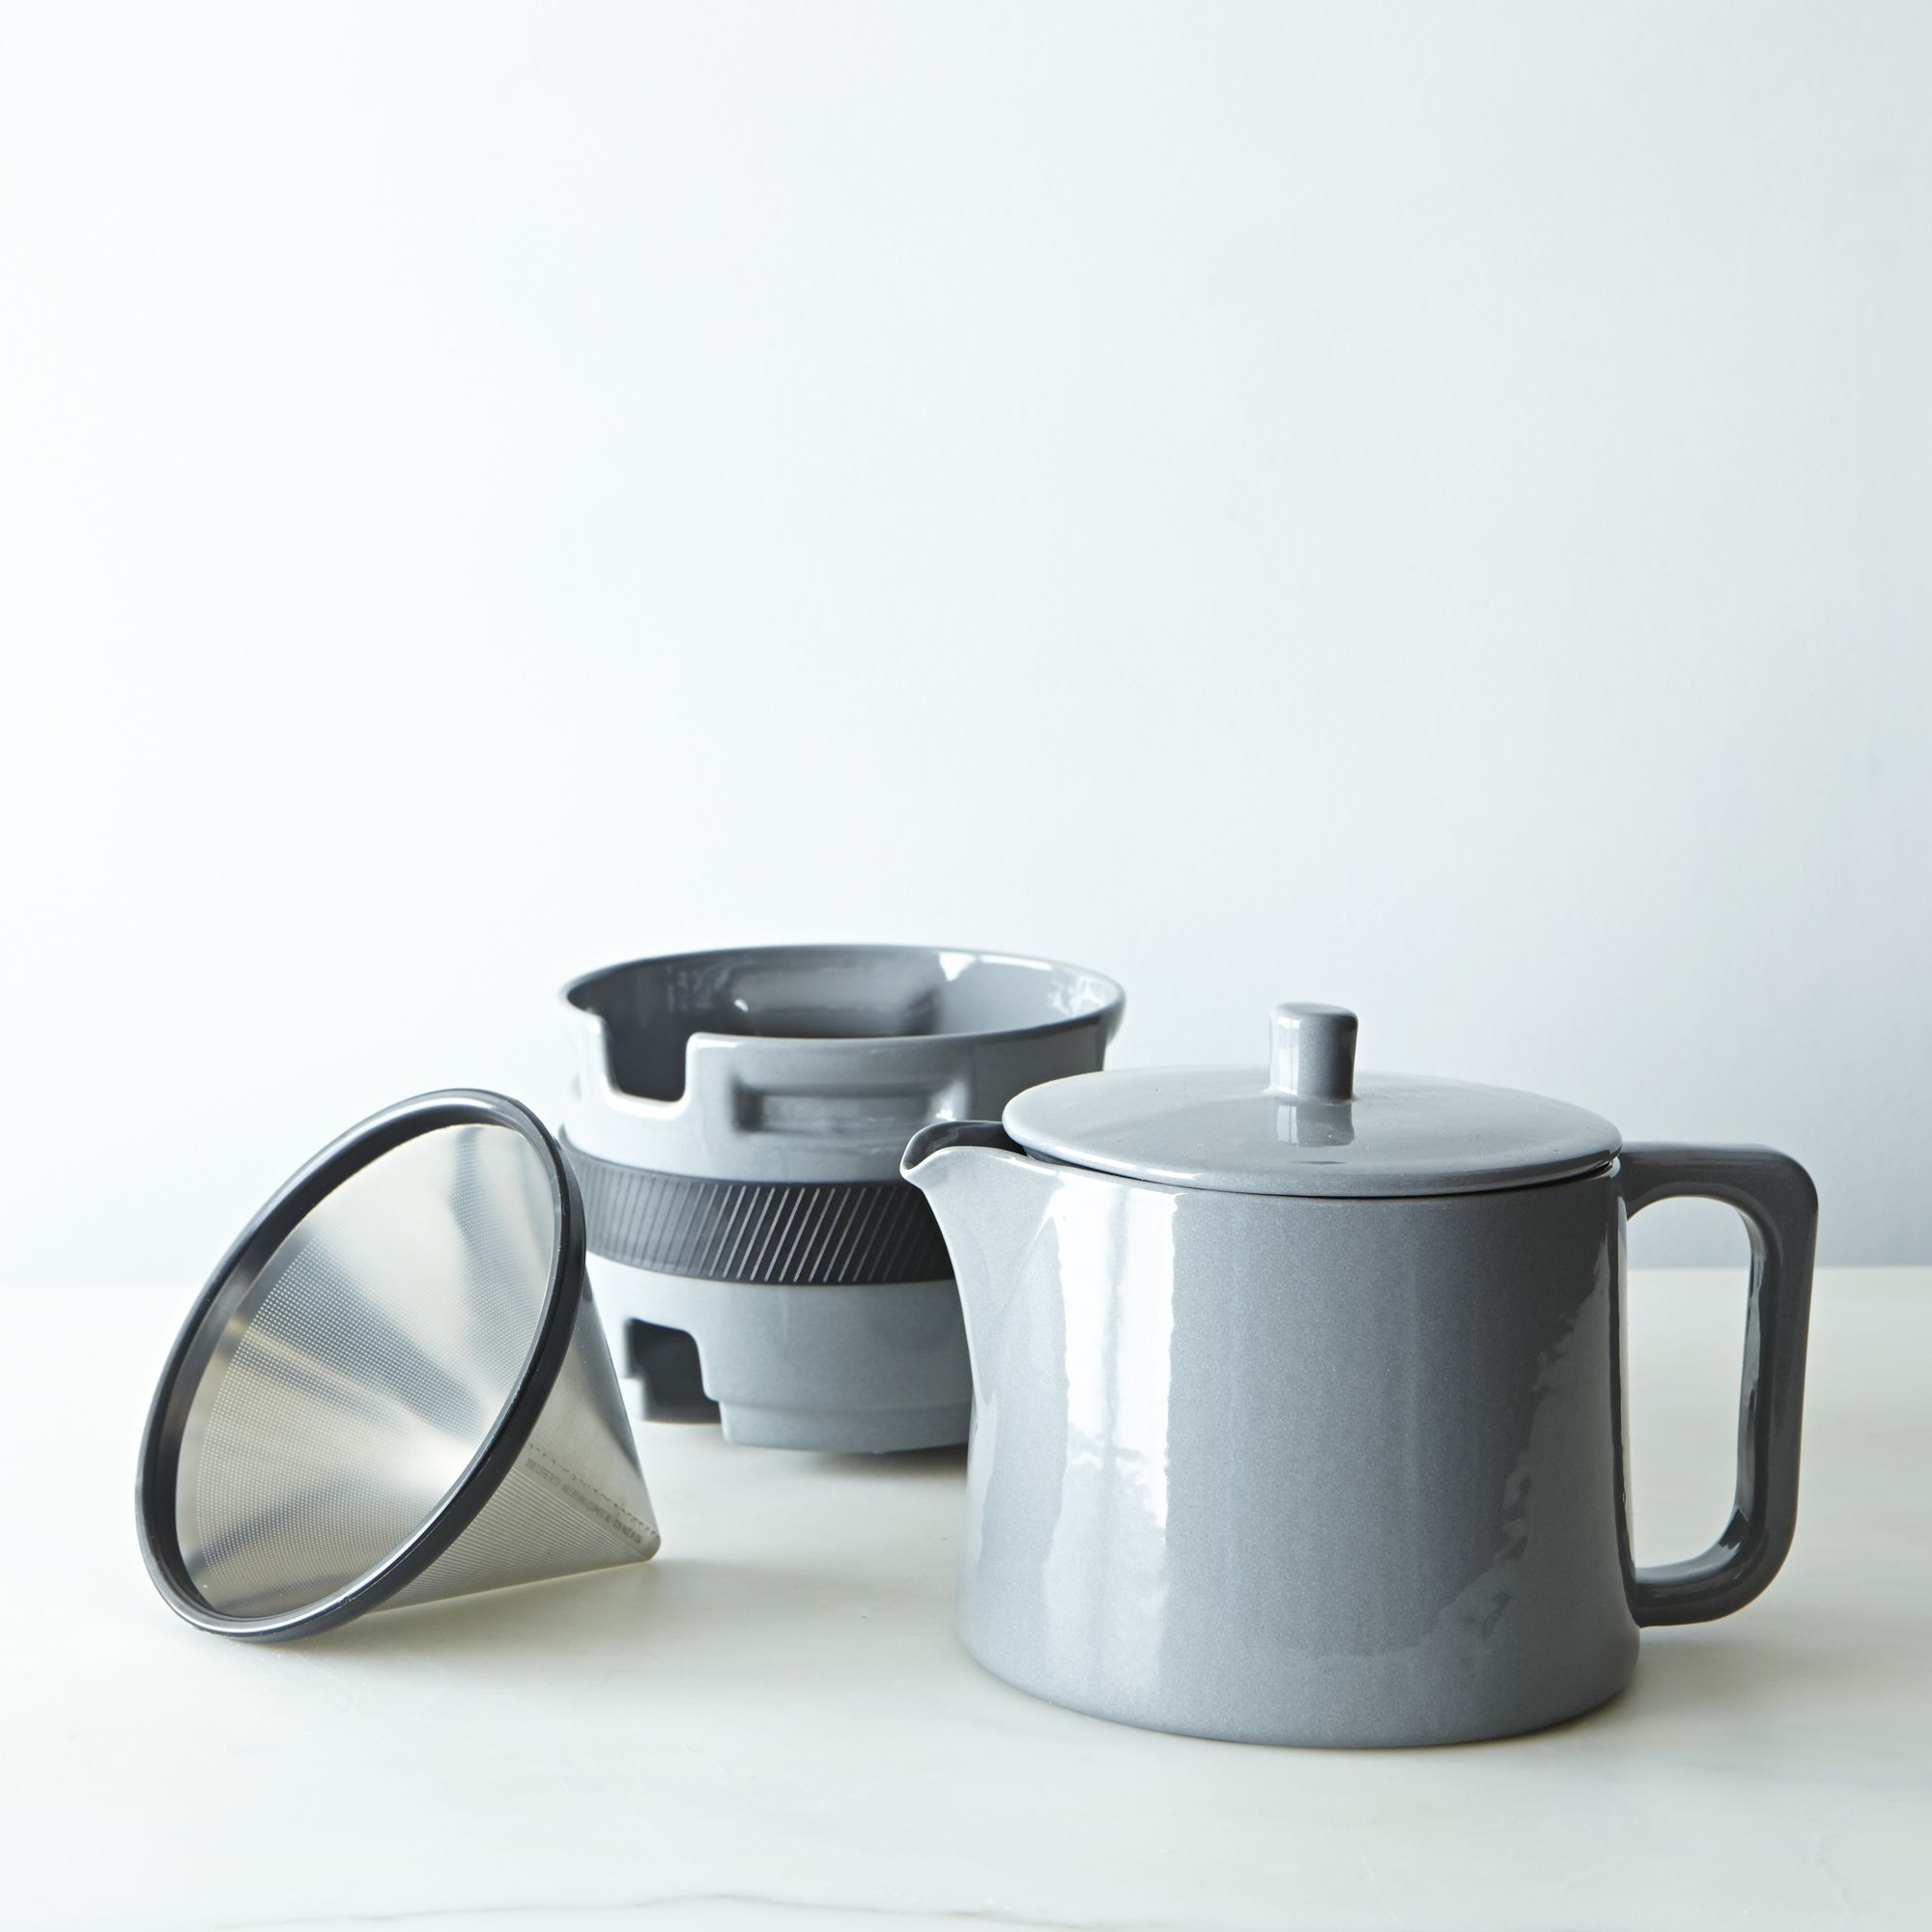 24a0abd8-a0f7-11e5-a190-0ef7535729df--2014-1009_ablebrewing_kone-brewer_grey_silo288